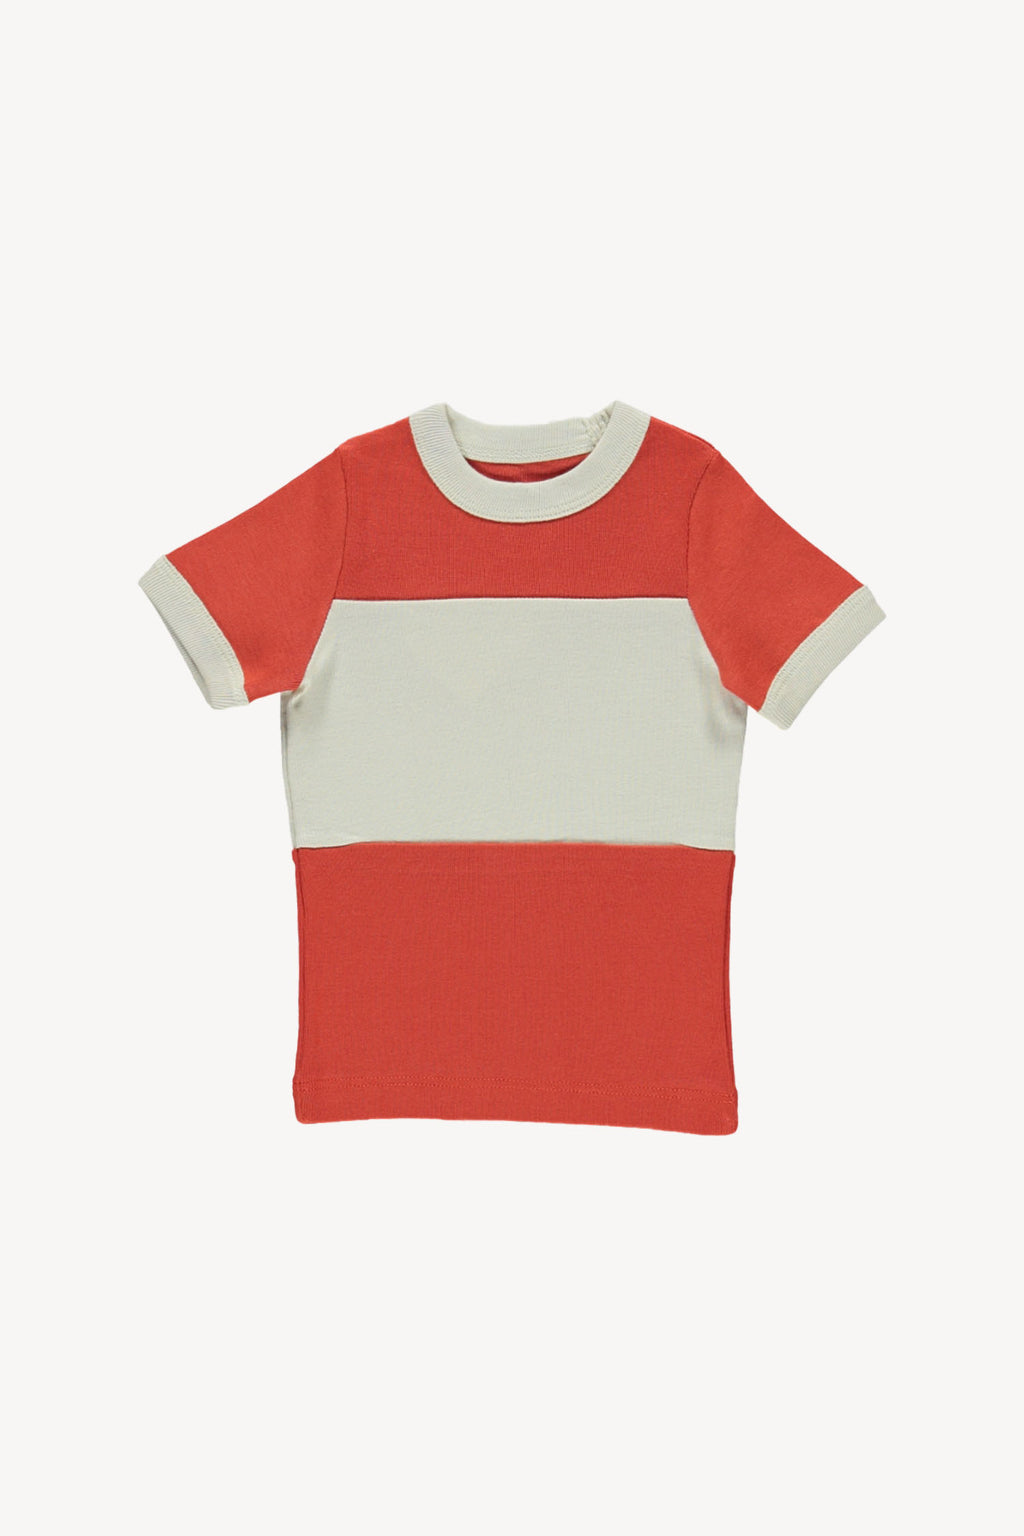 Fin and Vince - Vintage Tee (Brick Red)